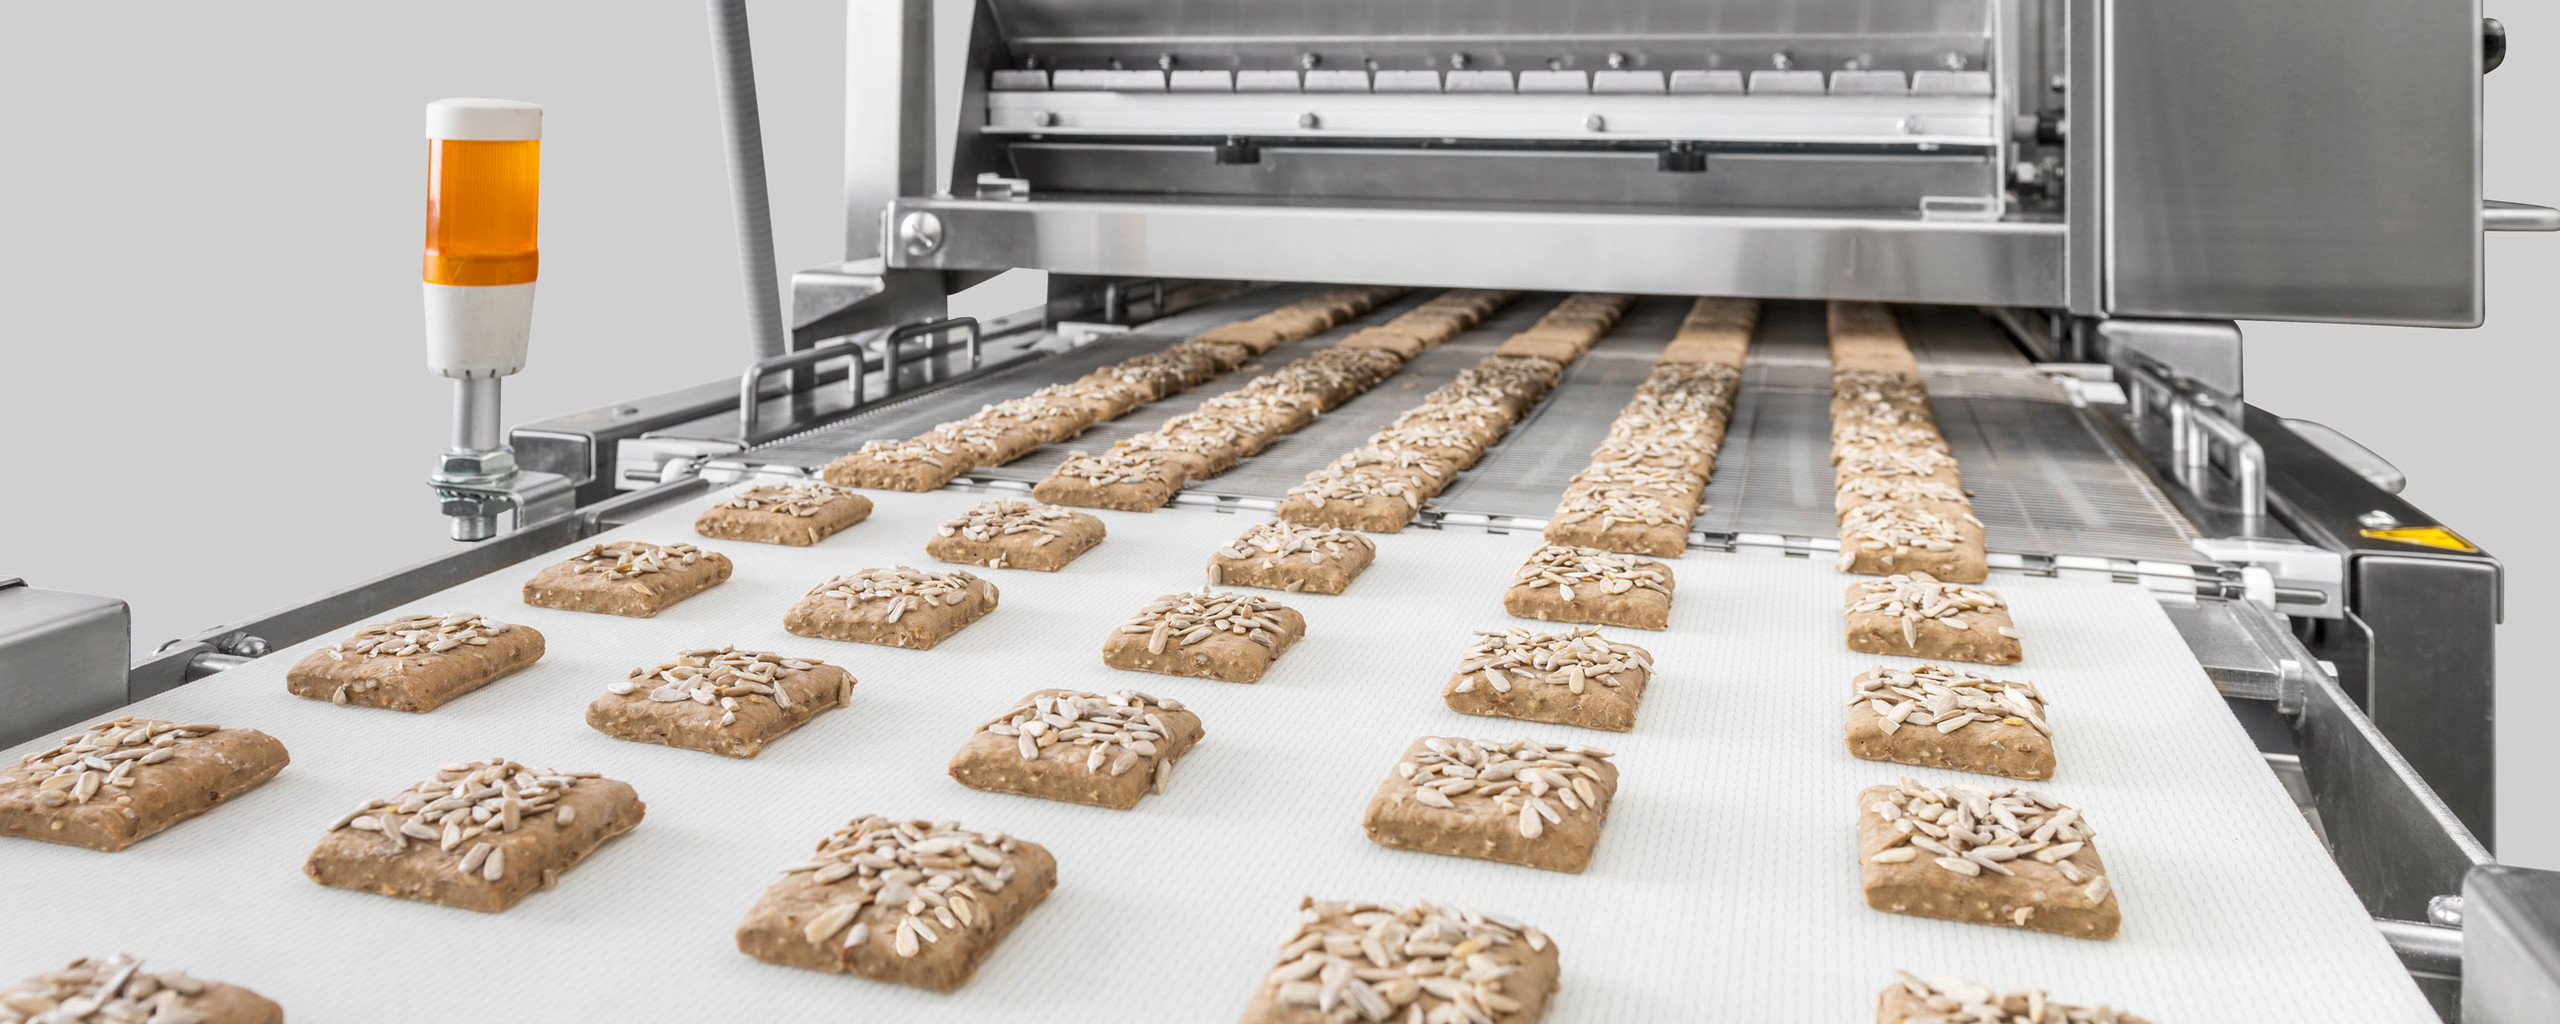 RONDO-Brotproduktion-Bread-Production-Körnerbrötchen-Seeded-Rolls-2560x1024